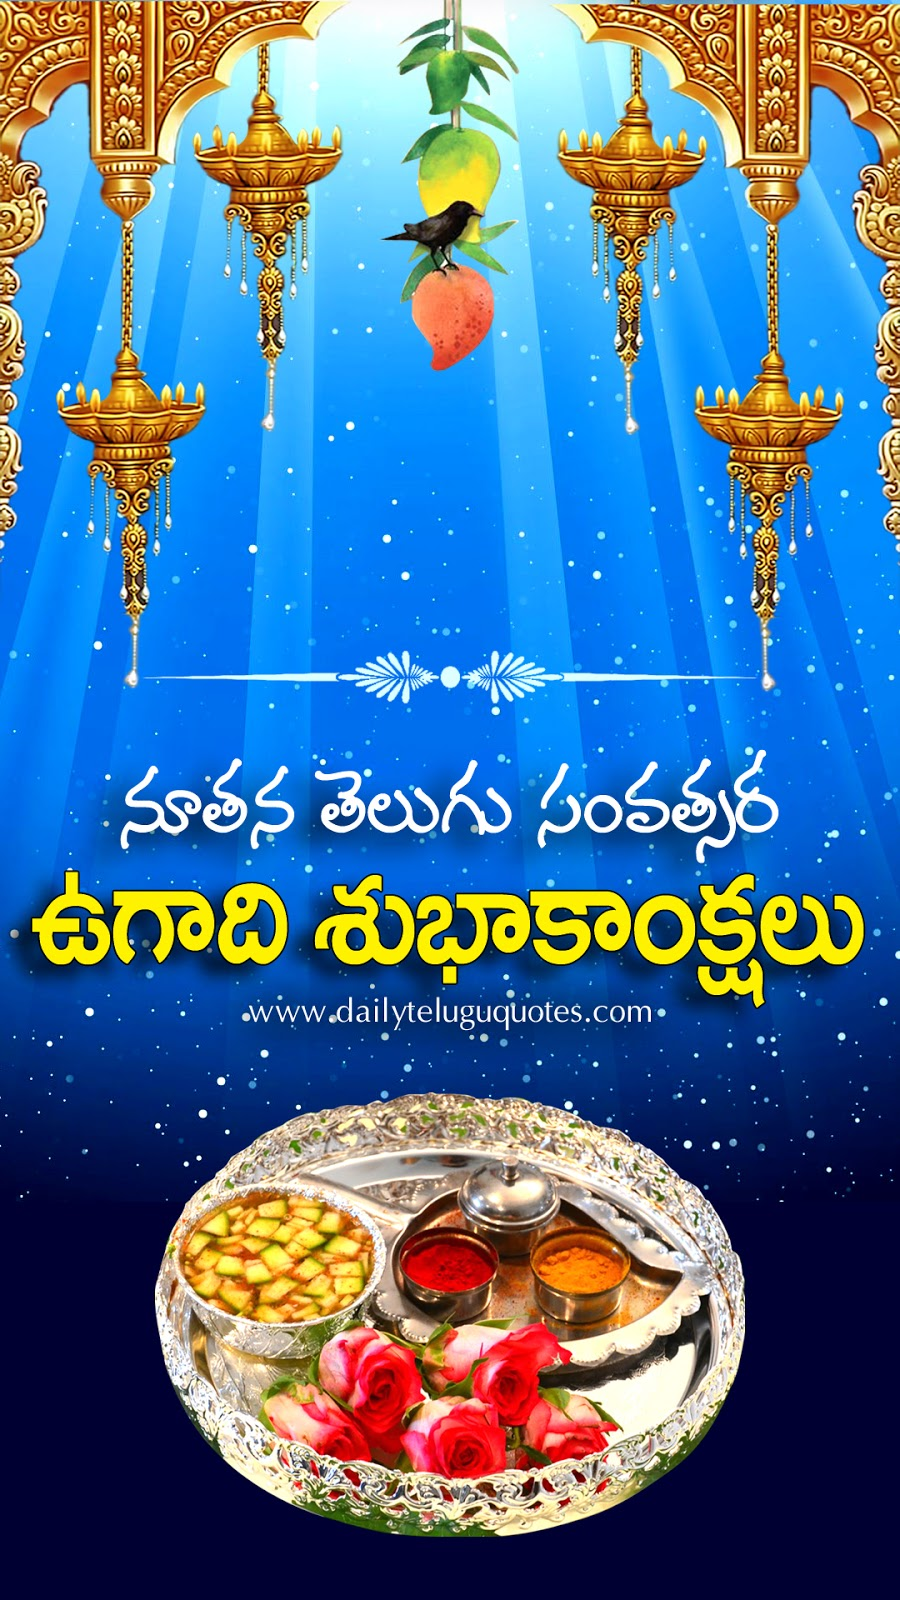 Telugu New Year Ugadi Hd Mobile Wallpapers Dailyteluguquotes